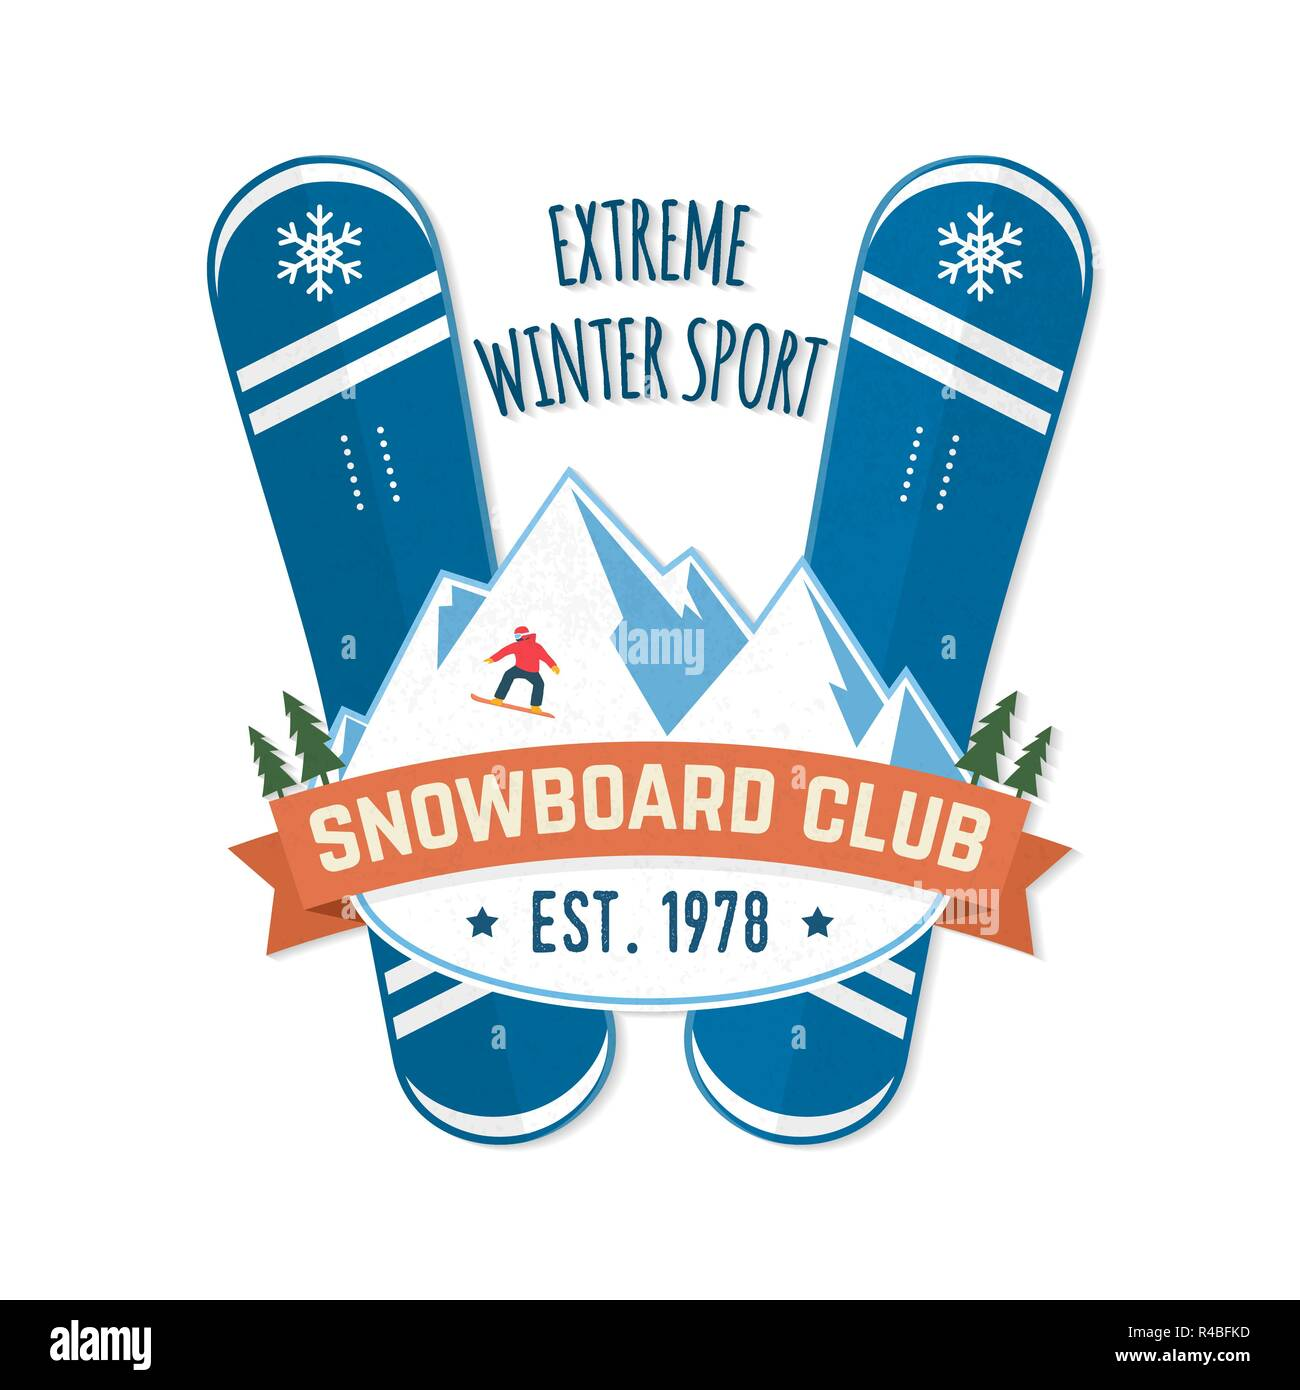 Snowboard Club. Vector illustration. Concept for shirt, patch, print, stamp or tee. Vintage typography design with snowboard and mountain silhouette. Extreme winter sport. - Stock Image